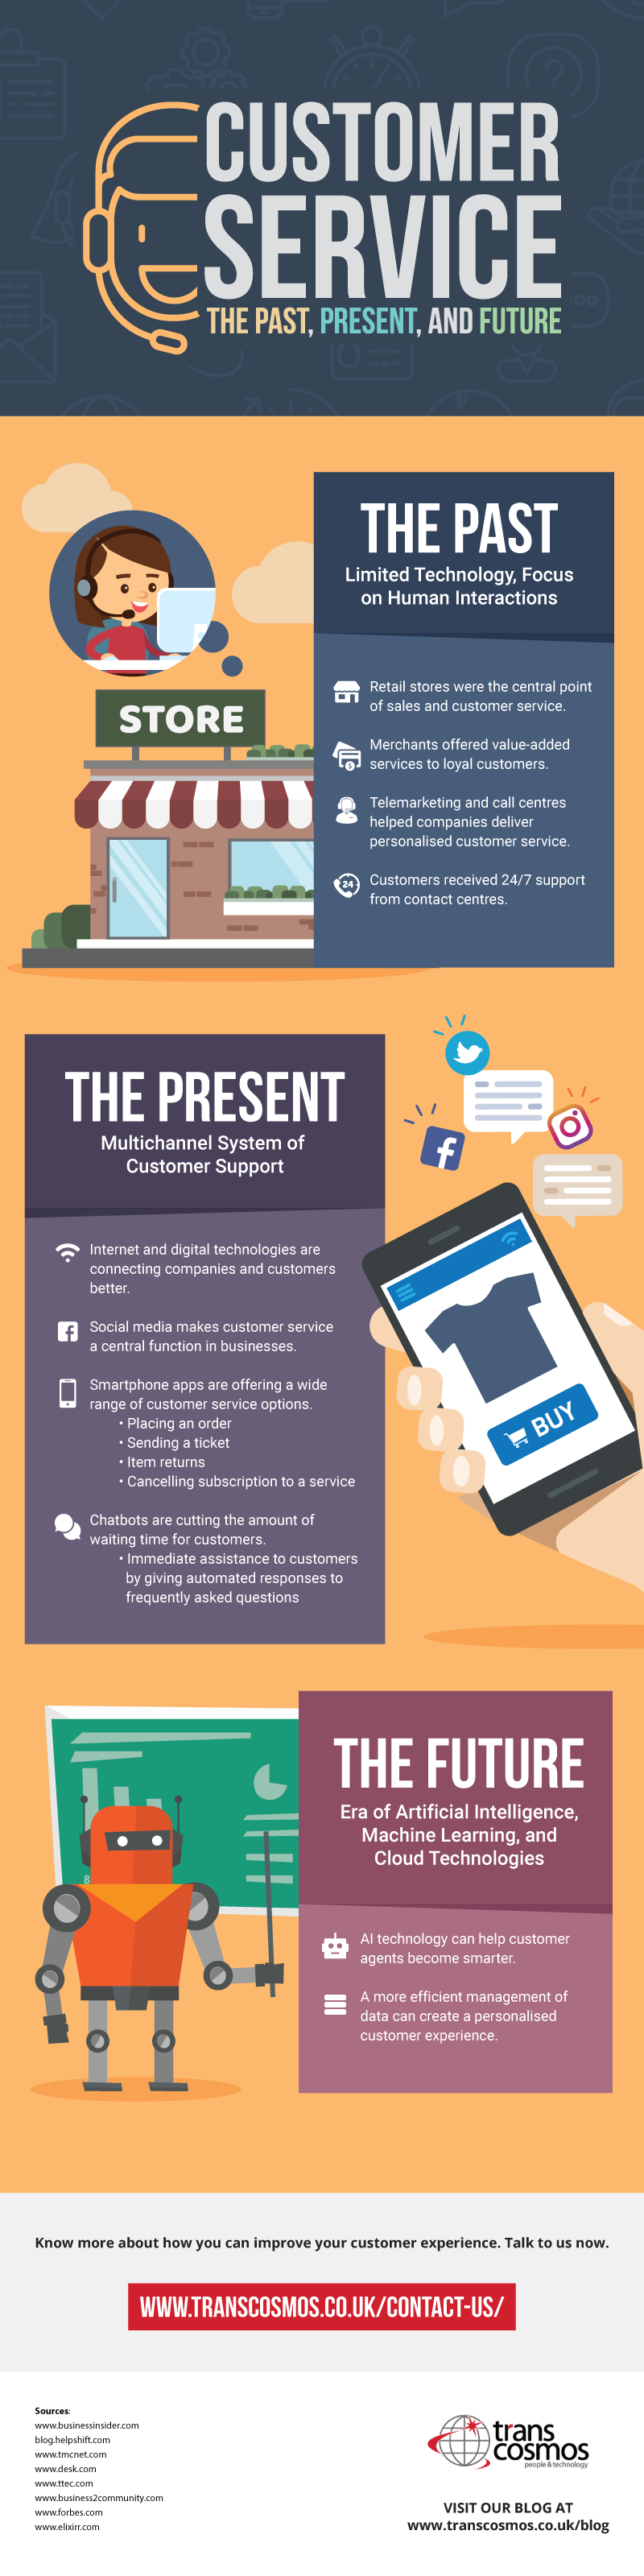 customer-service-past-present-future-infographic